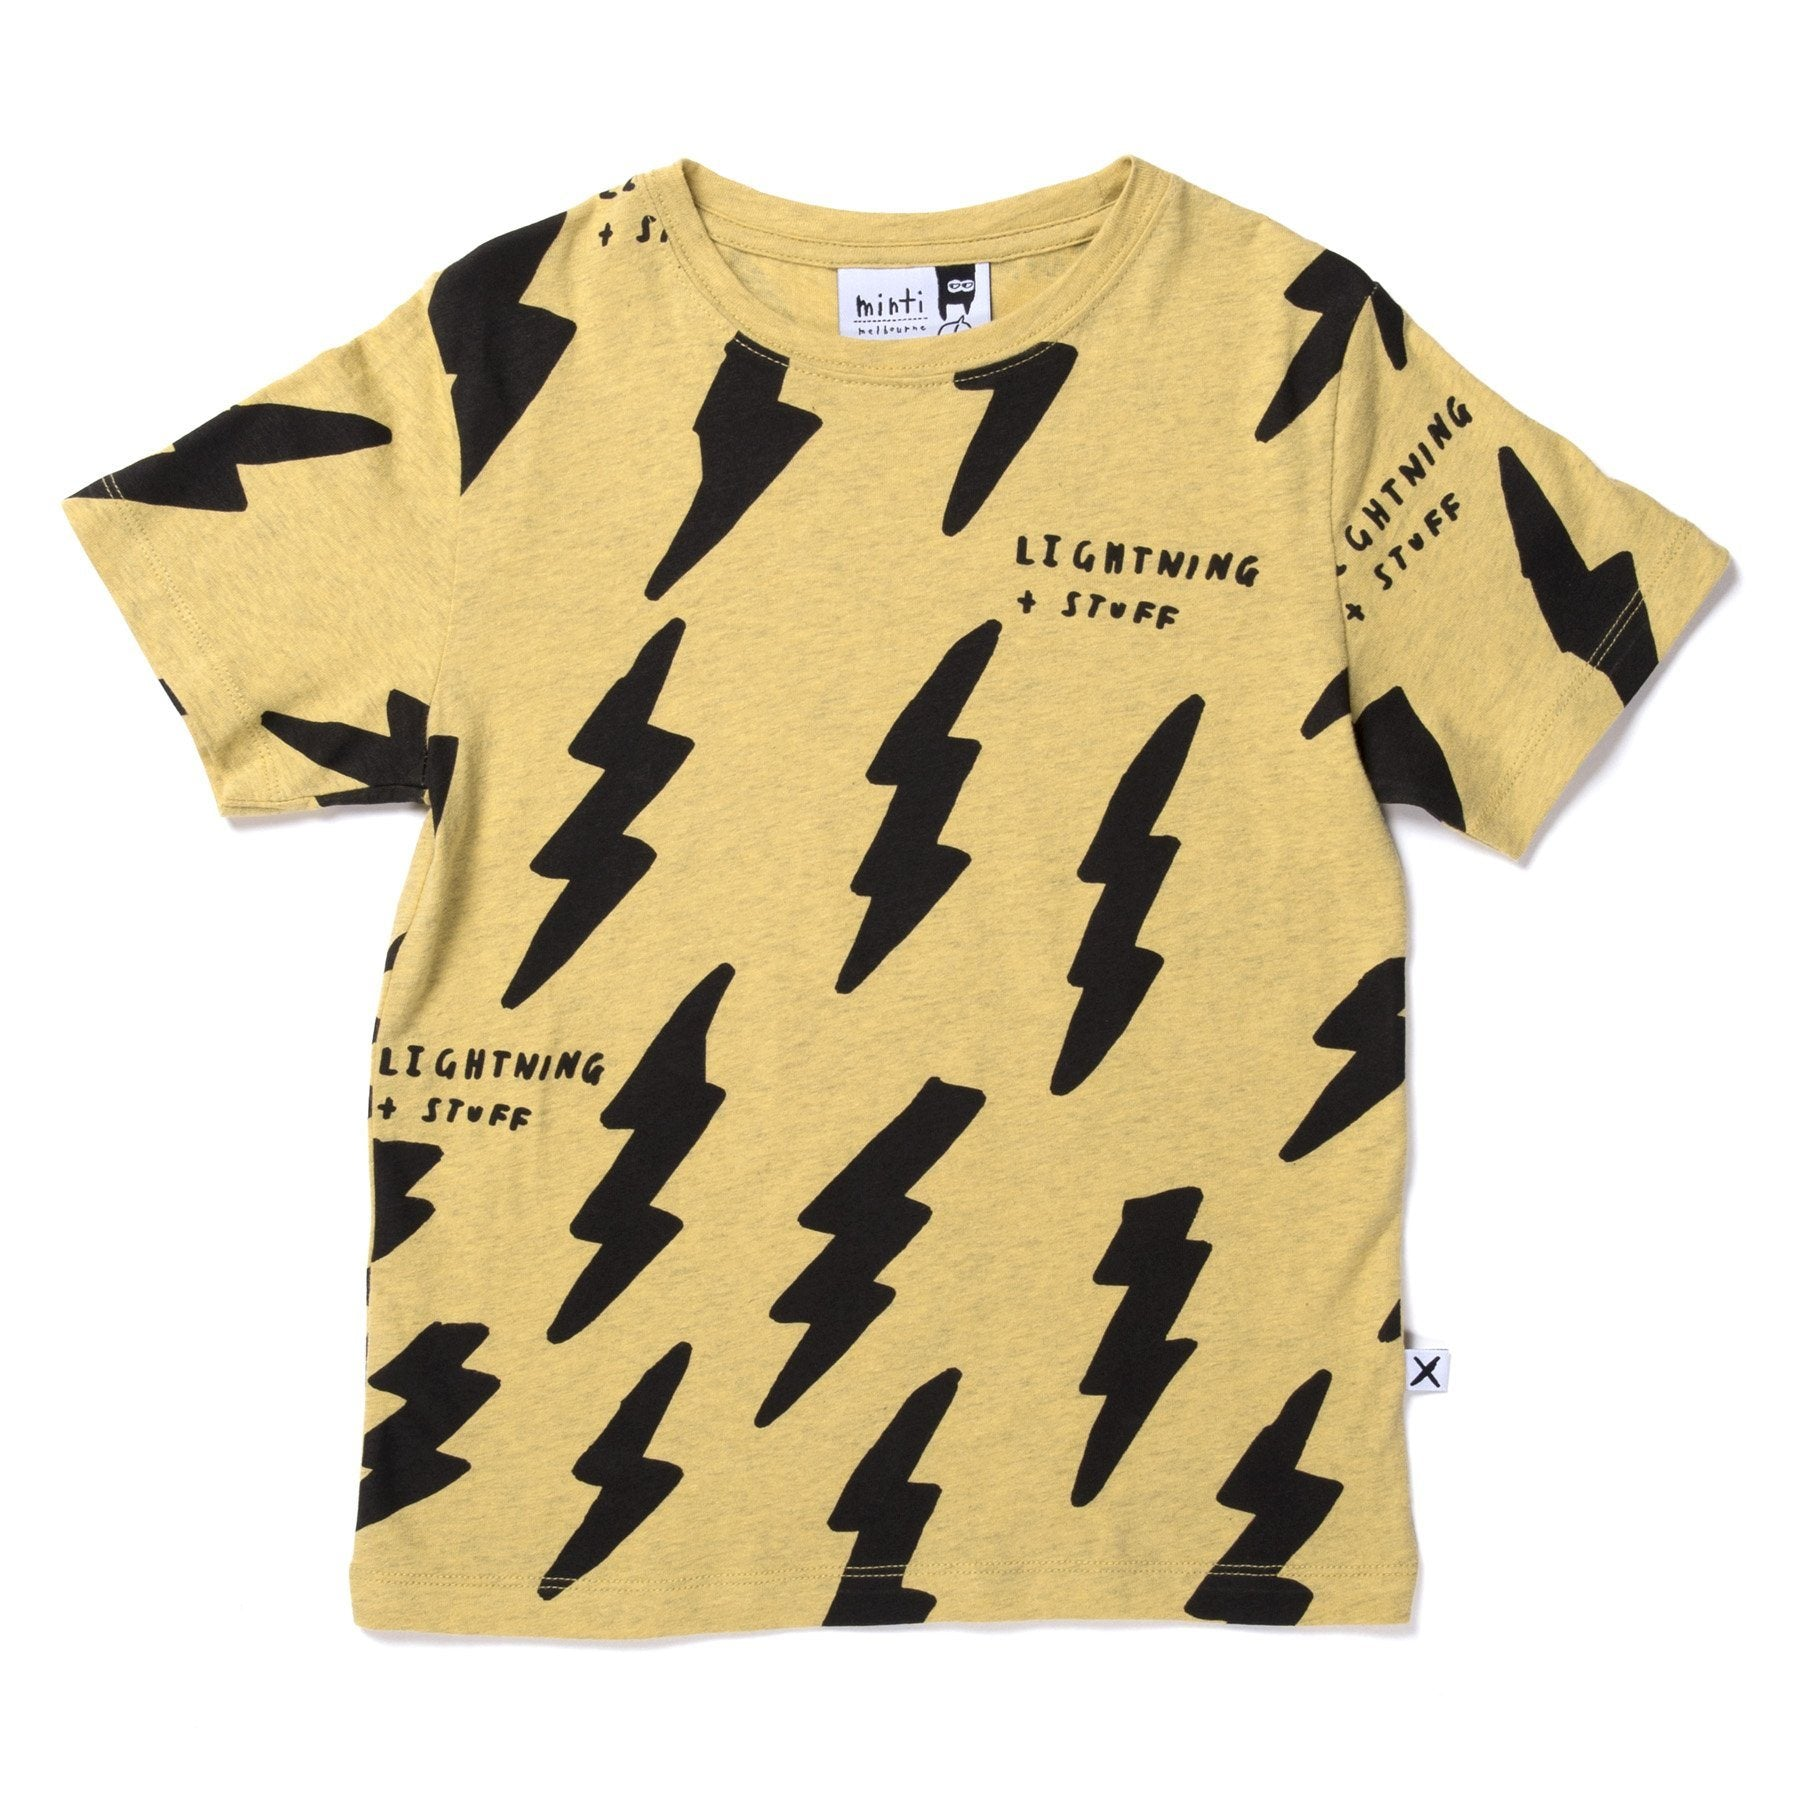 Lightning and Stuff Tee